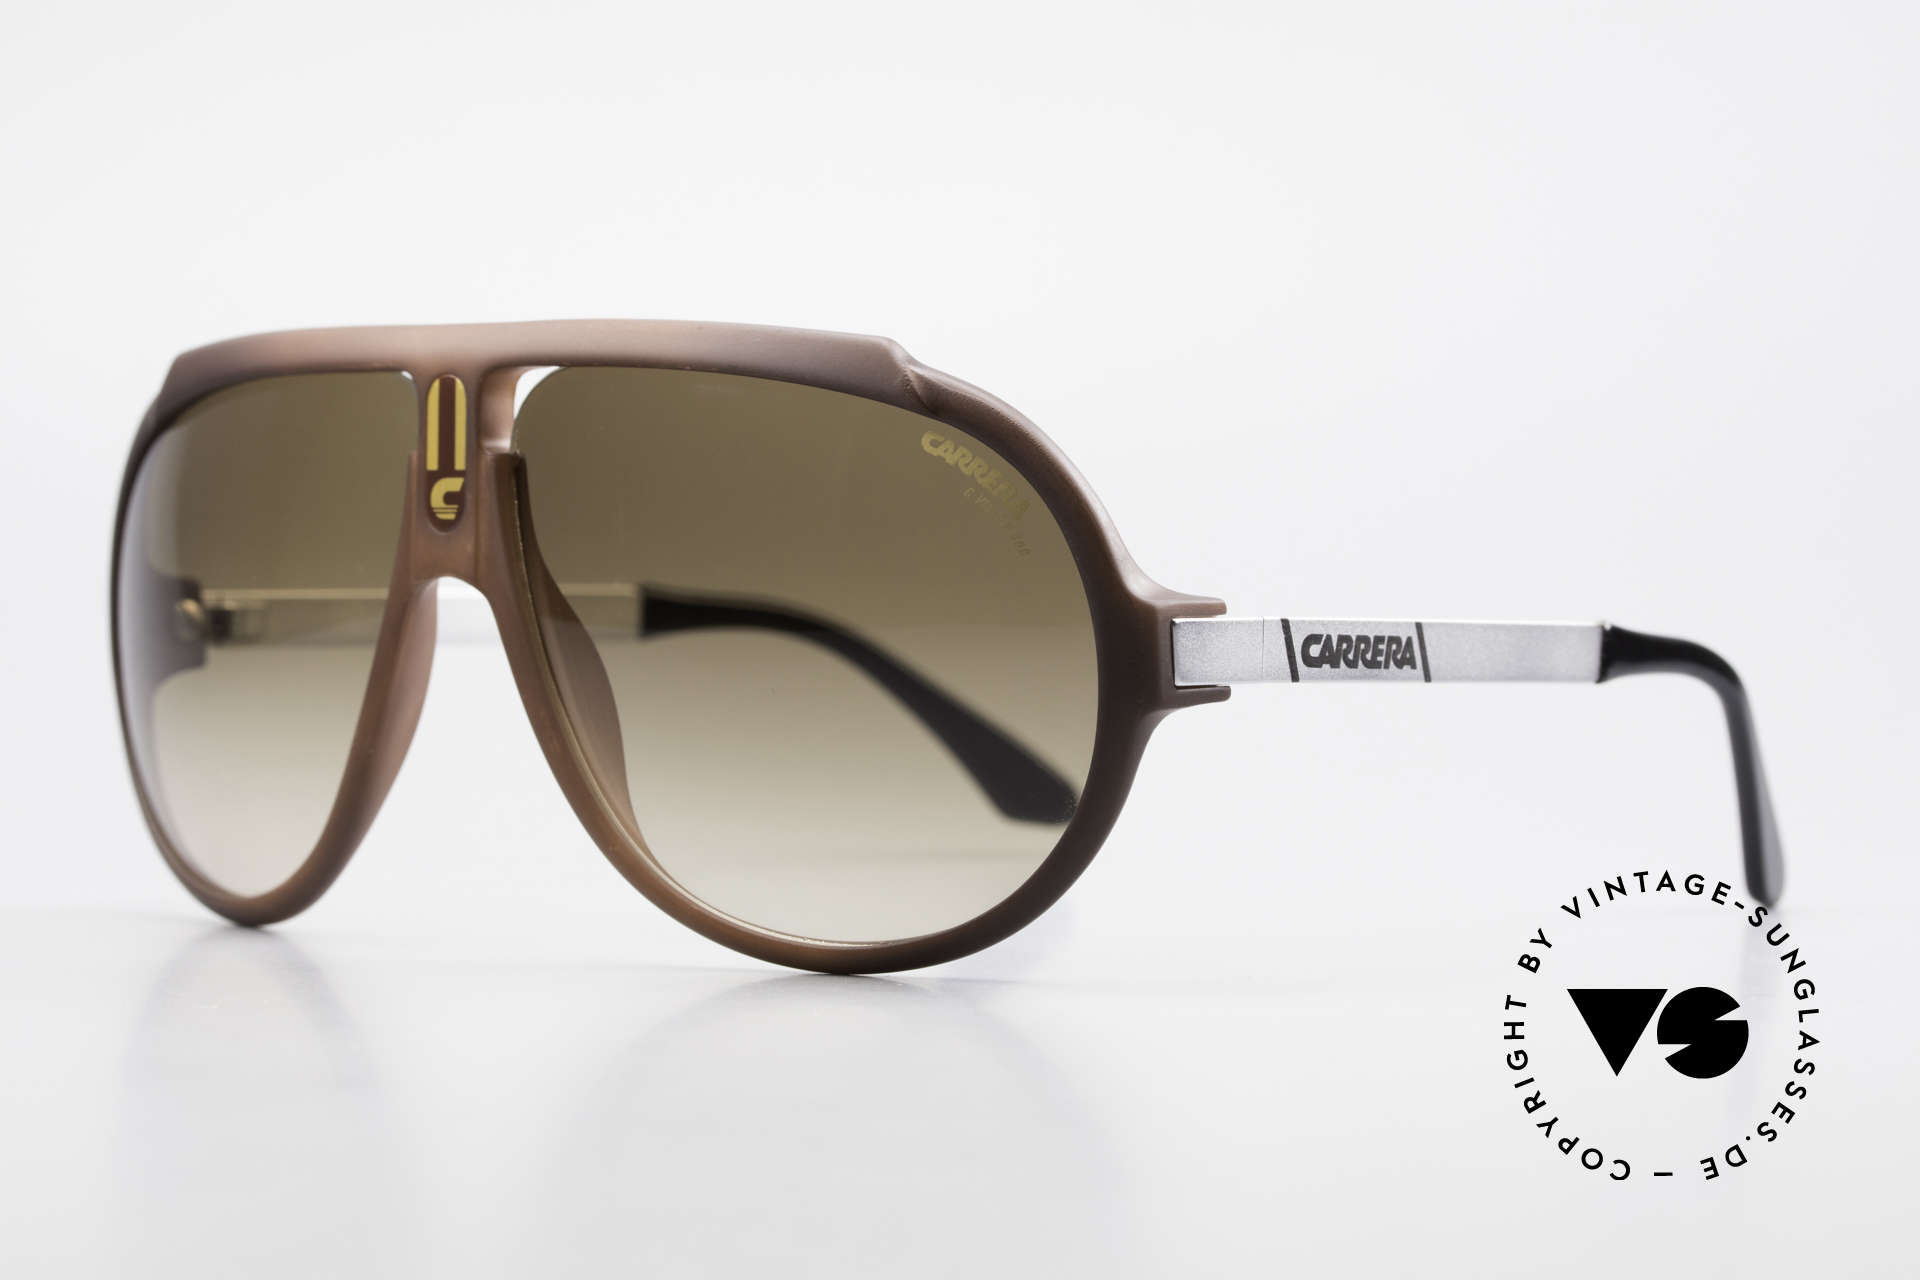 Carrera 5512 80er Don Johnson Sonnenbrille, Modell 5512 getragen von Don Johnson in MIAMI VICE, Passend für Herren